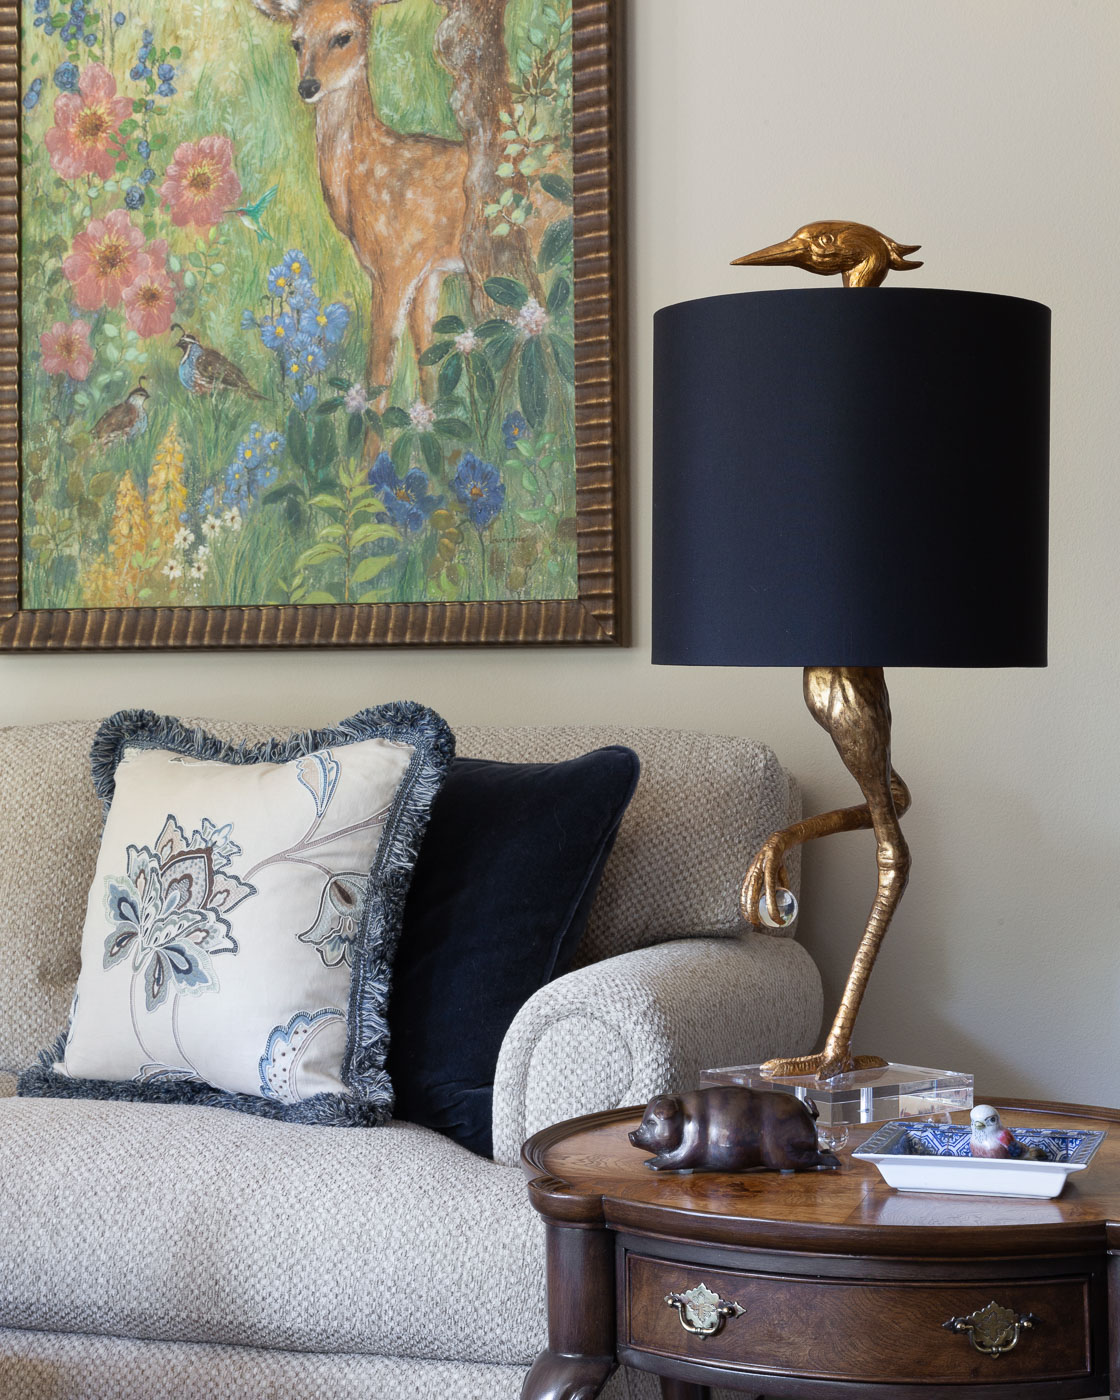 Quirky & humorous Ibis lamp nestles next to the newly framed & fanciful art diptych.